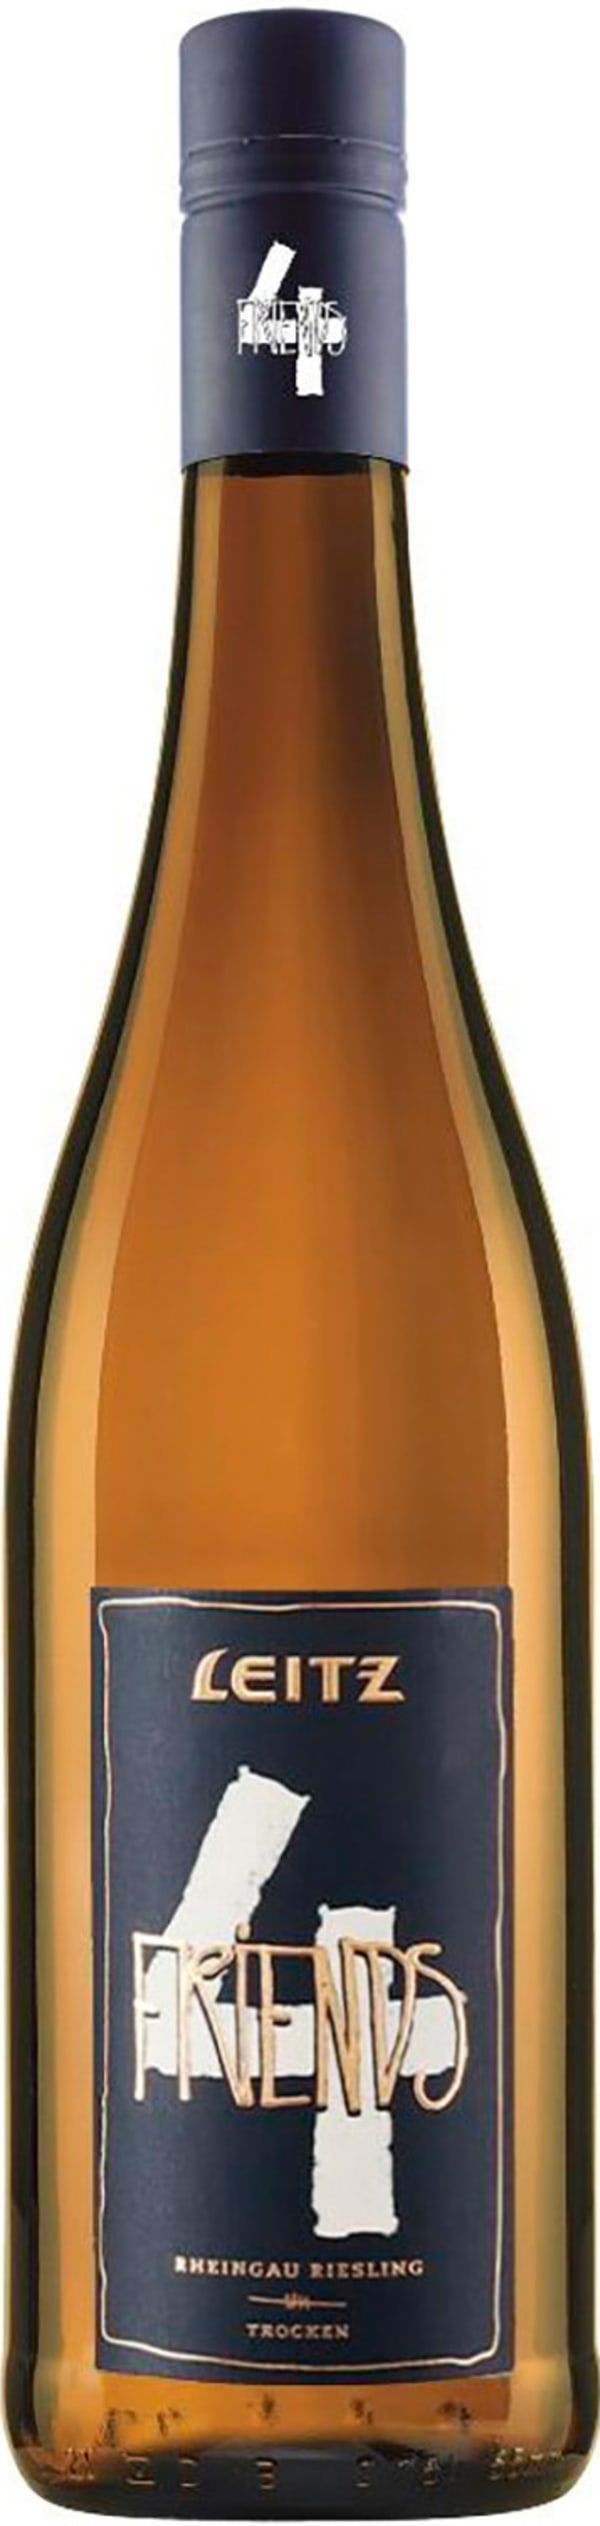 Leitz 4friends Riesling Dry 2020